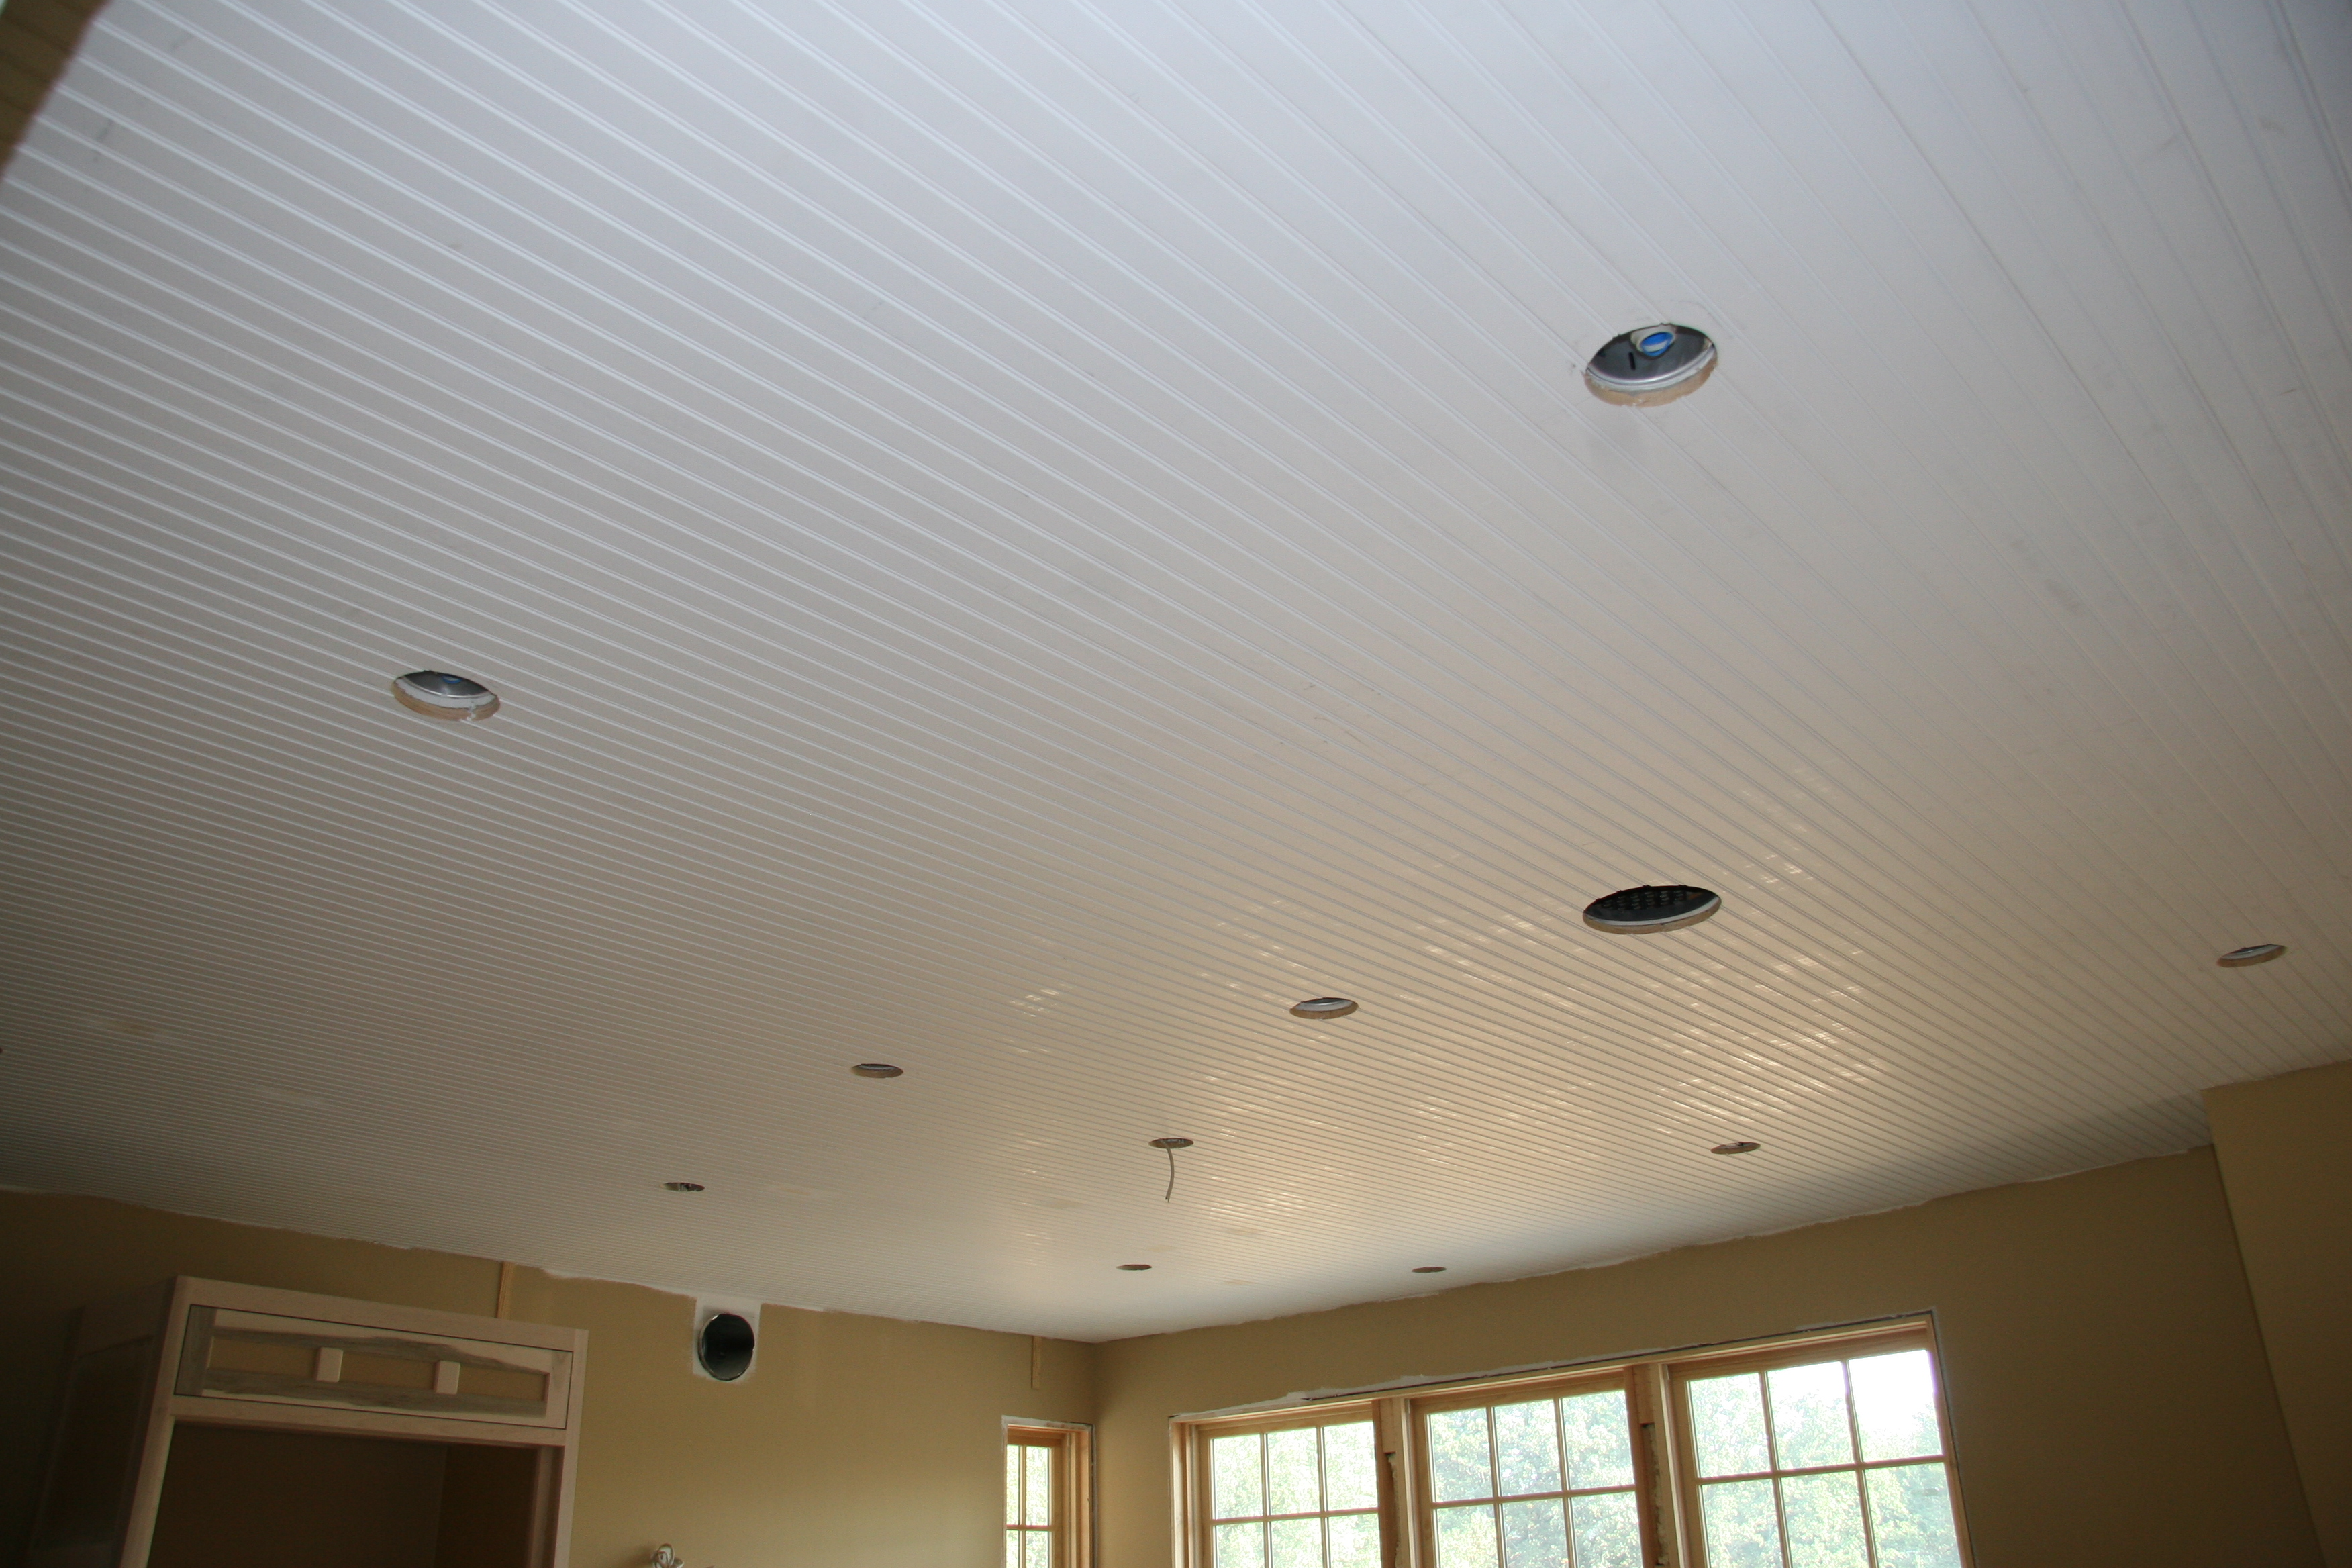 Tung and groove ceiling